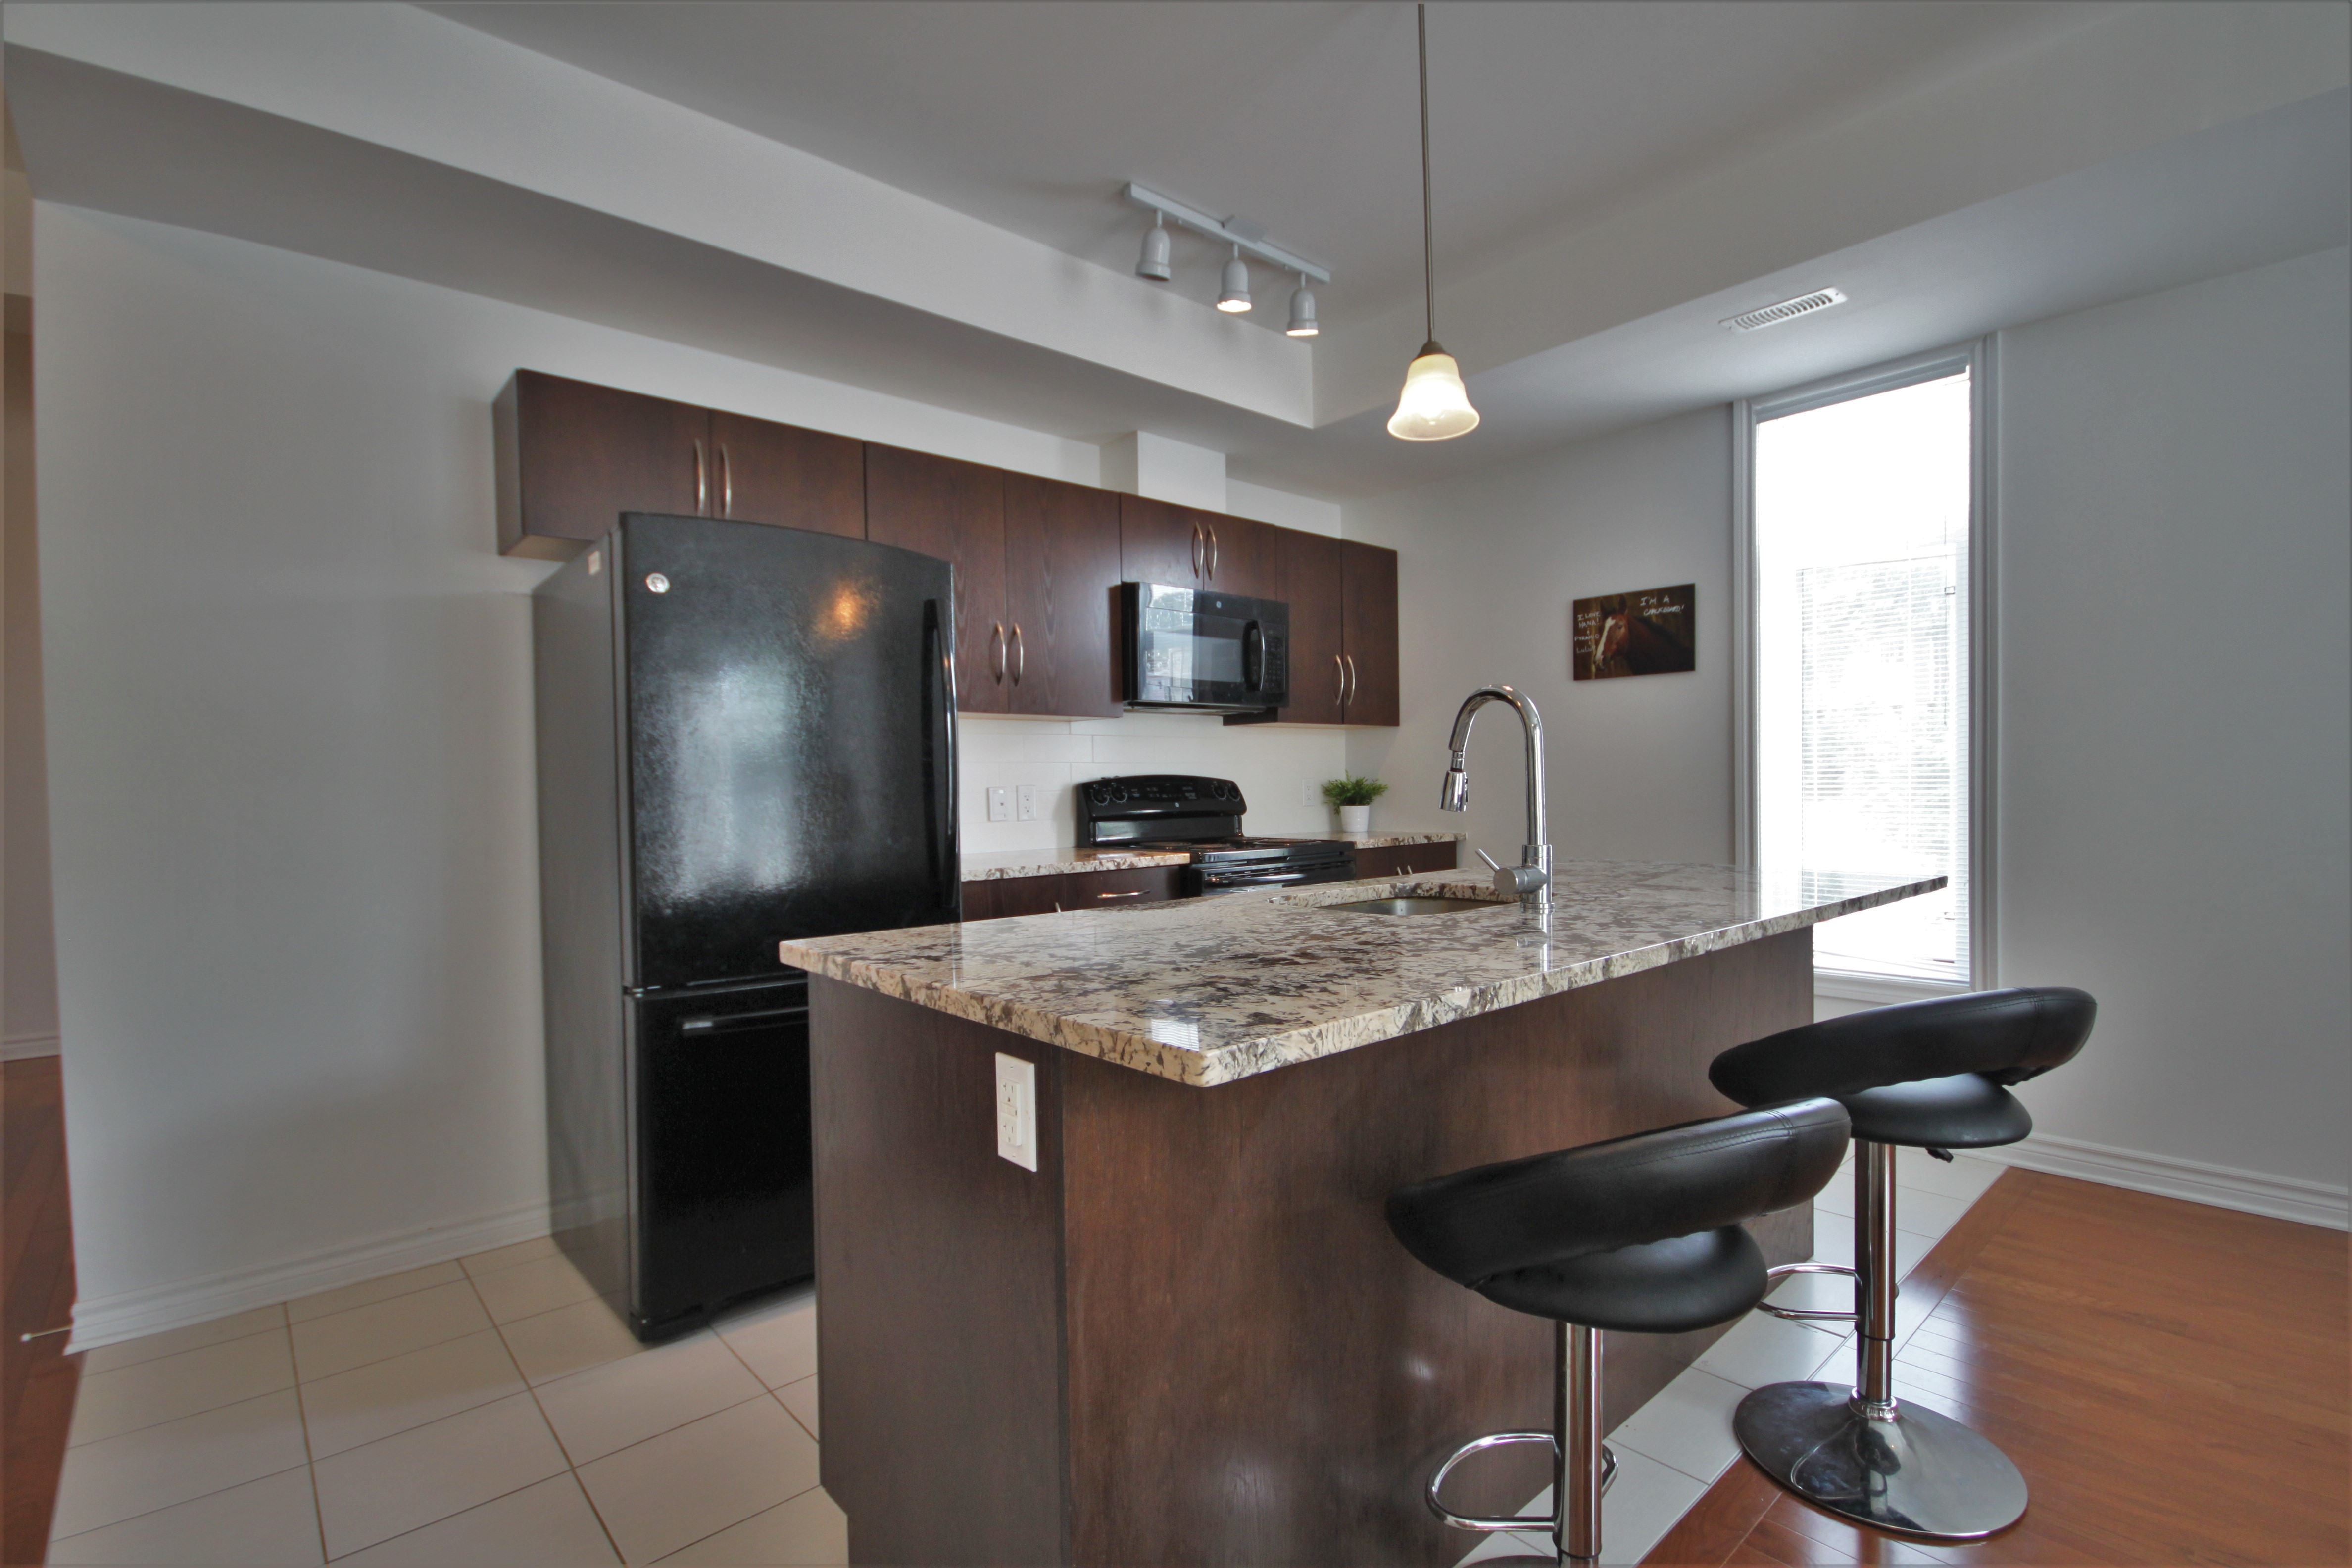 Bright & large open concept kitchen/dining/living space, with hardwood floors, huge island, granite counters, and lots of cabinet and cupboard space.